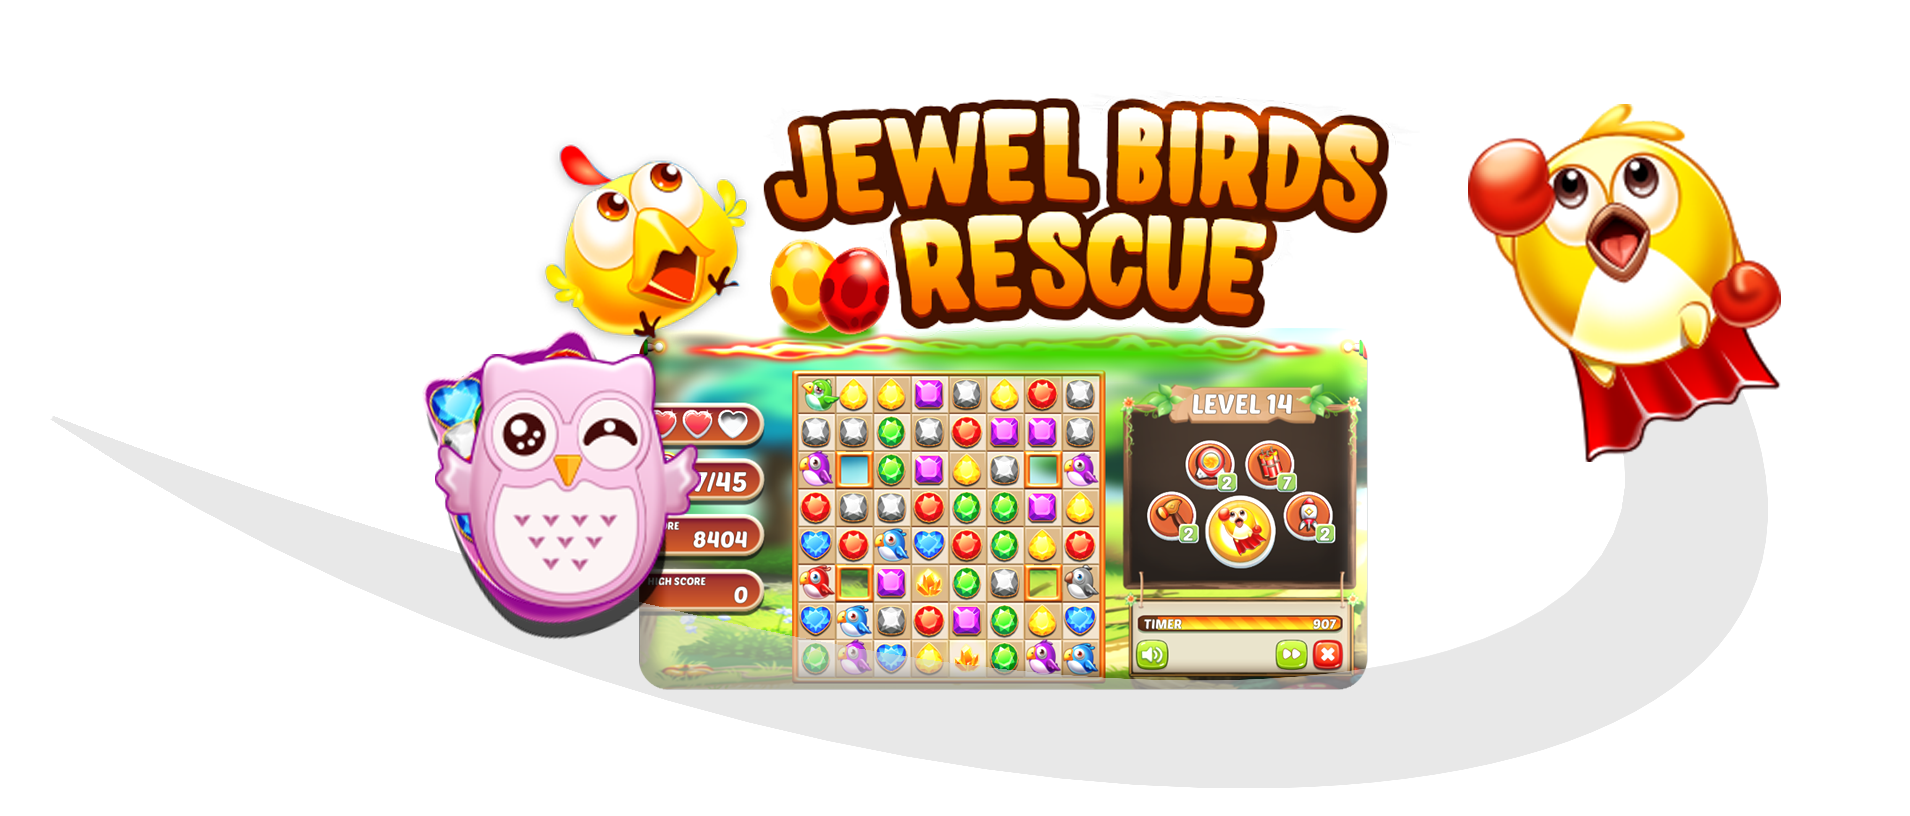 Jewel Birds Online Game Tournaments